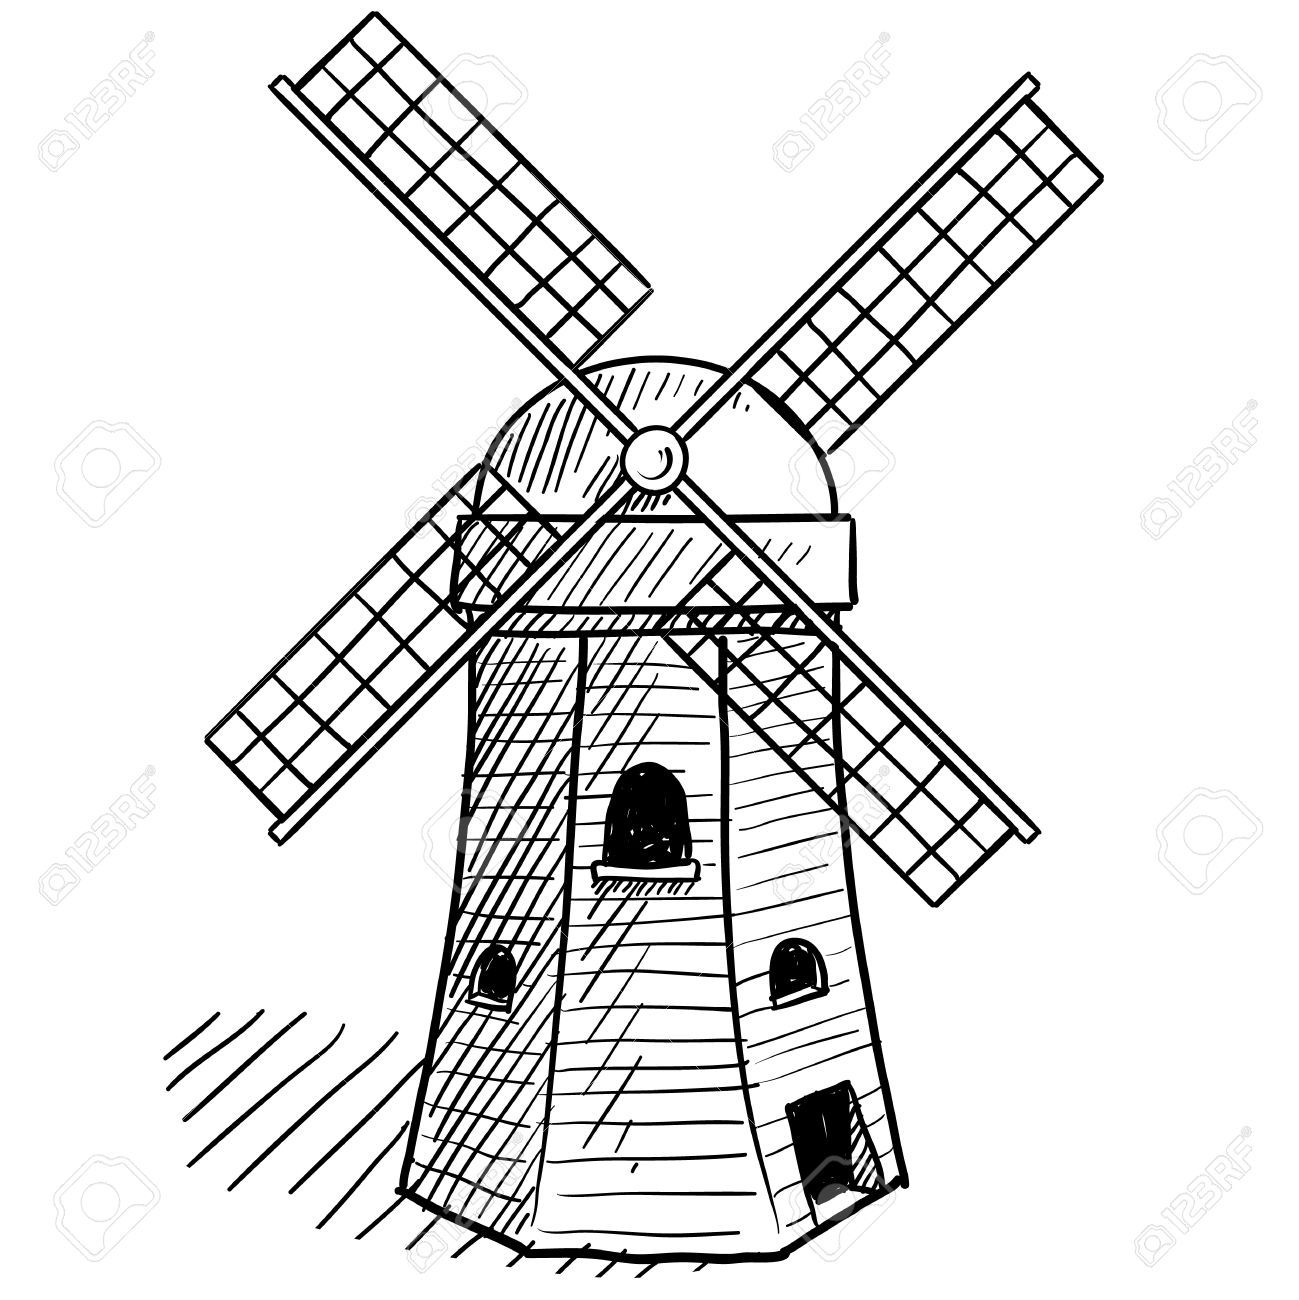 dutch windmill coloring pages - photo#29